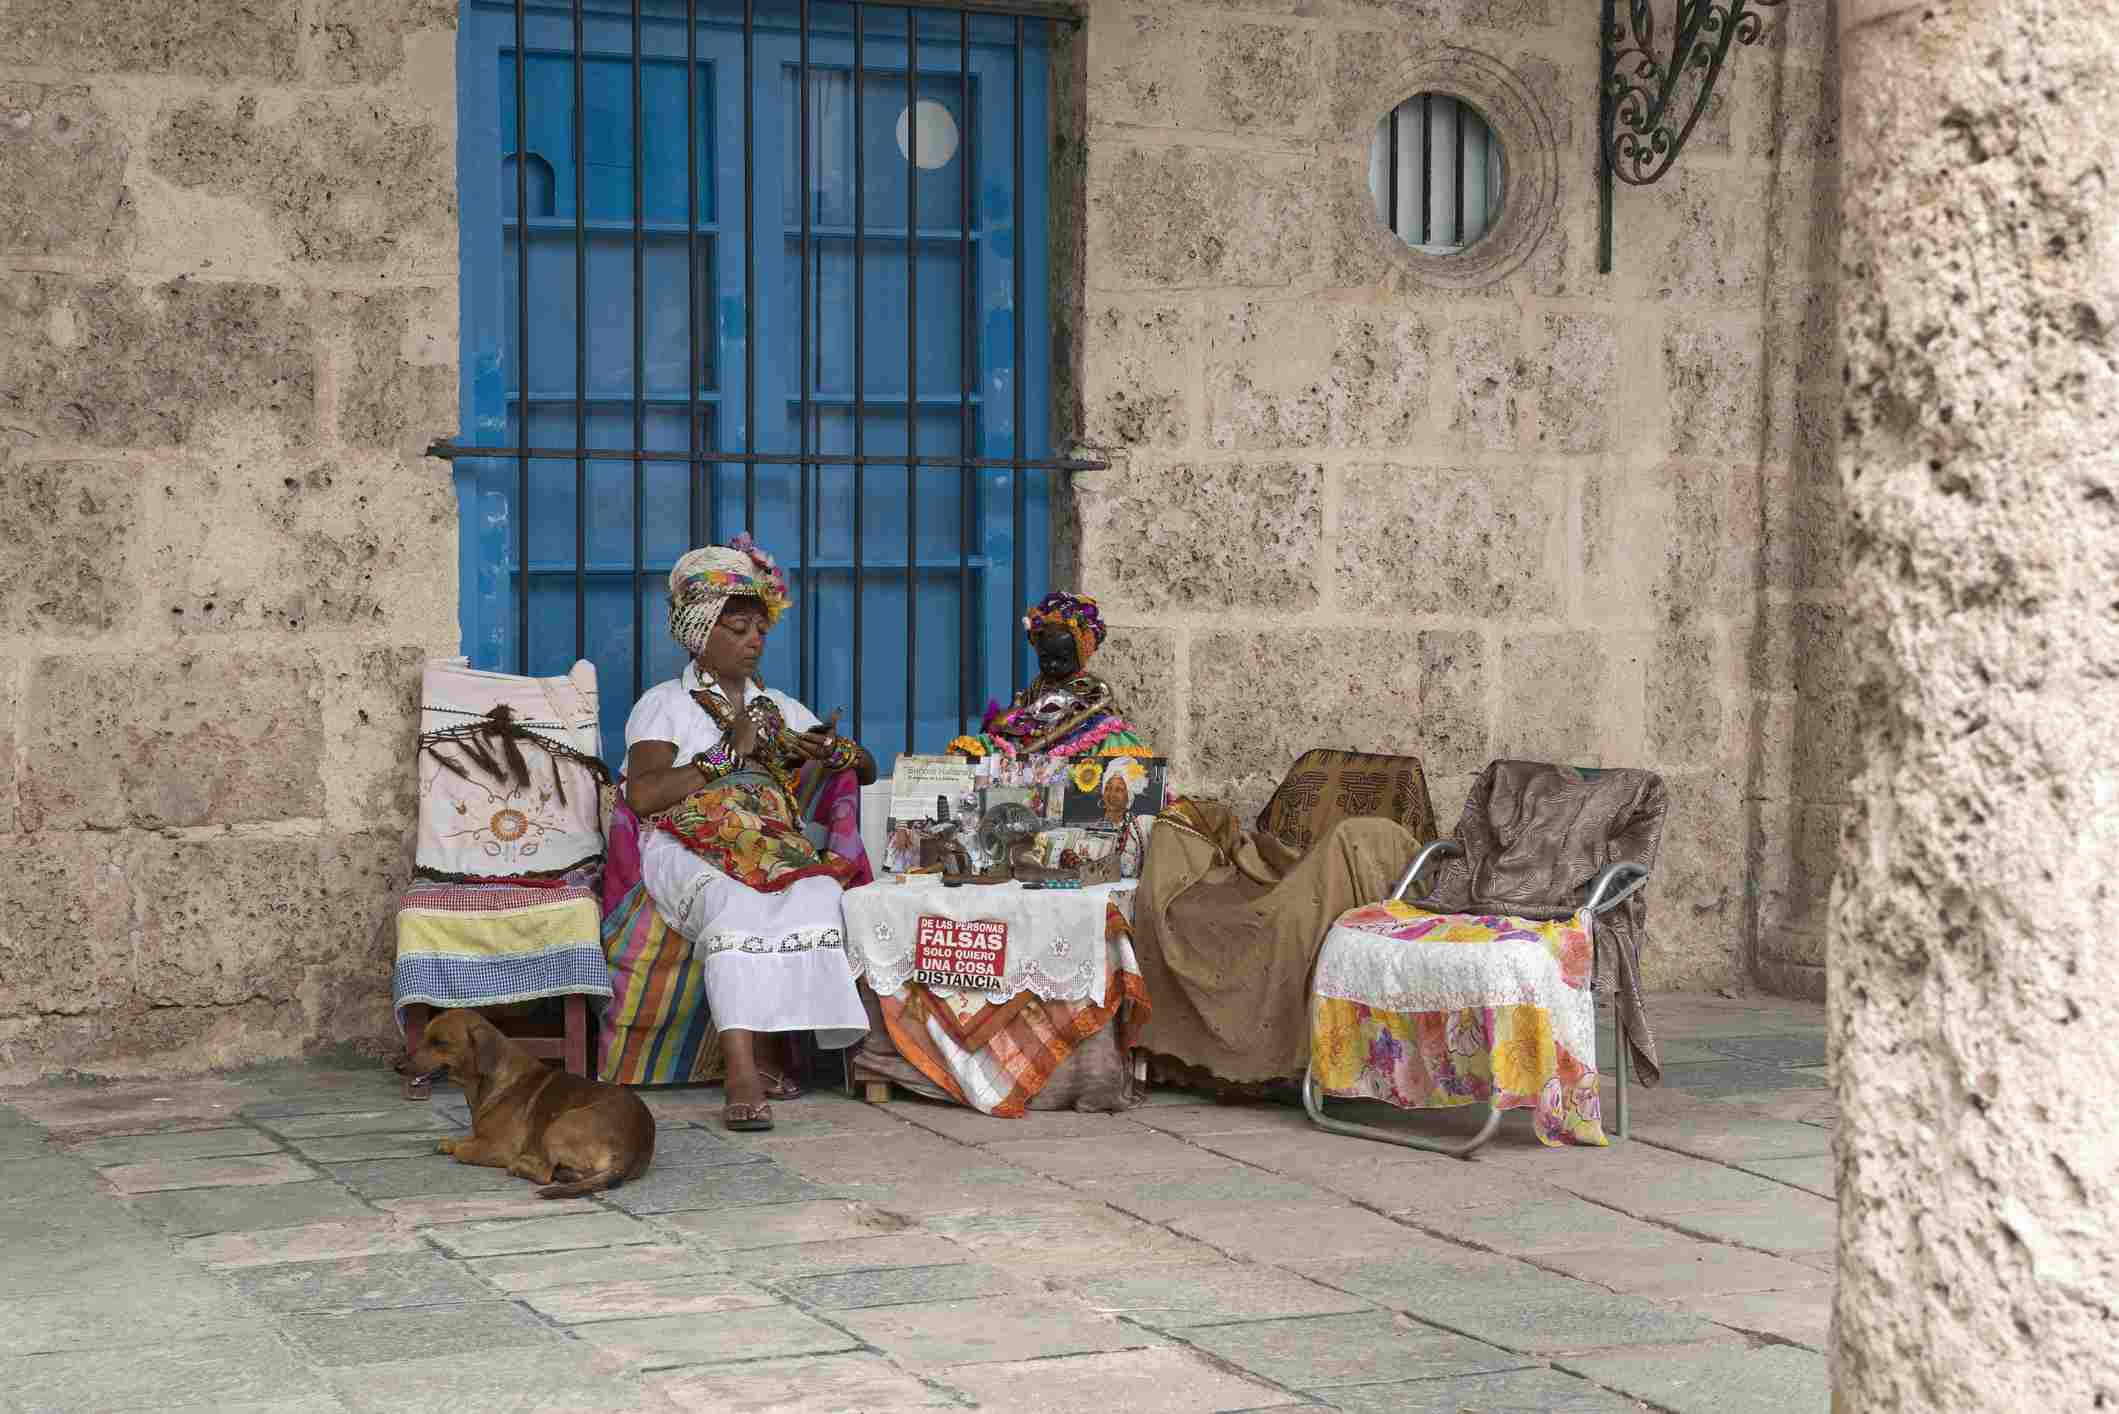 A fortune teller or Cuban Priestess in traditional dress using her smart phone.